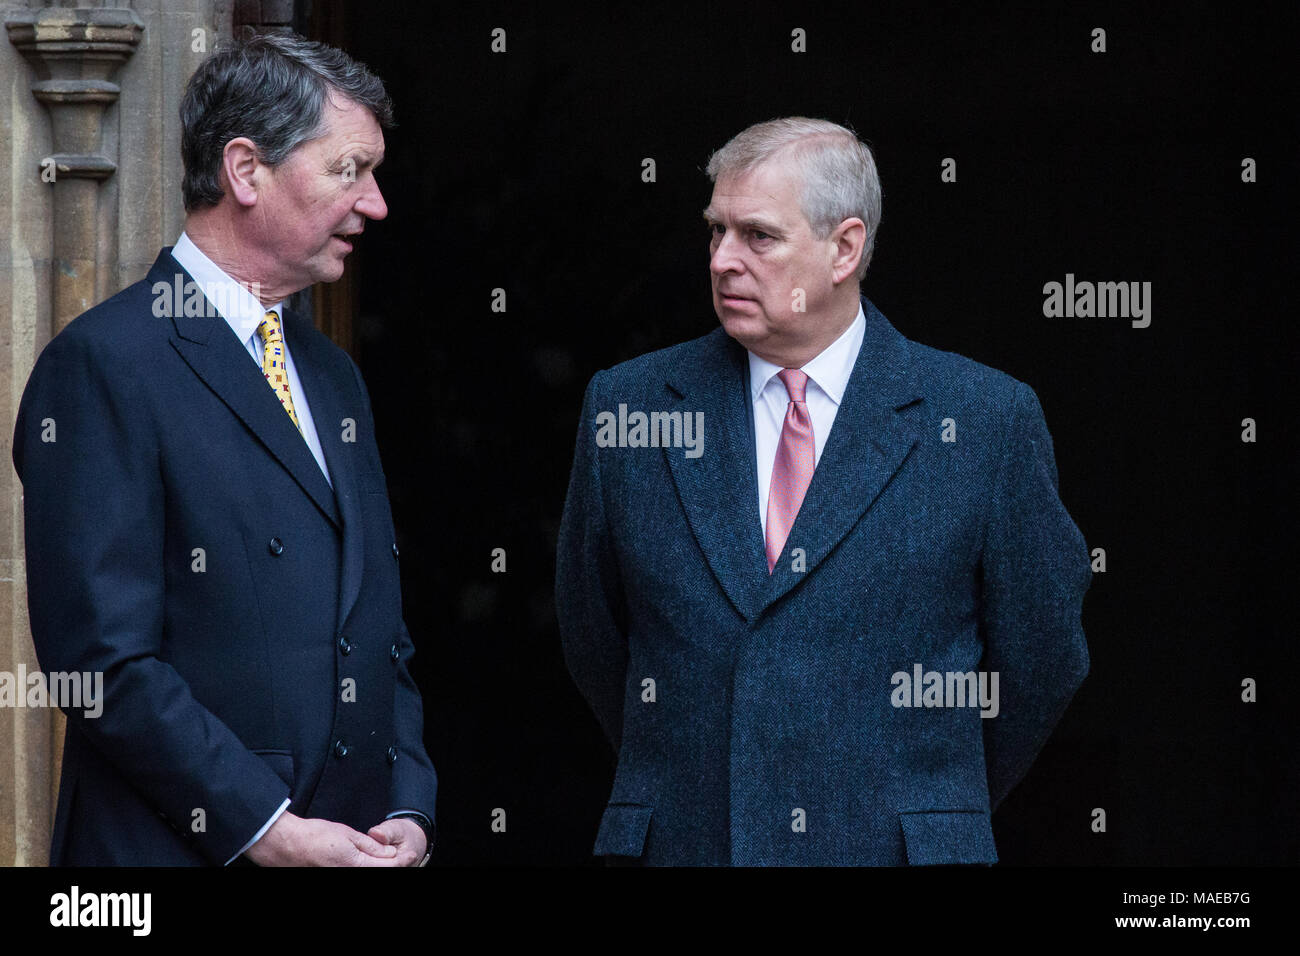 Windsor, UK. 1sat April, 2018. Prince Andrew, the Duke of York, speaks to Vice Admiral Sir Timothy Laurence outside St George's Chapel in Windsor Castle before the Easter Sunday service. - Stock Image